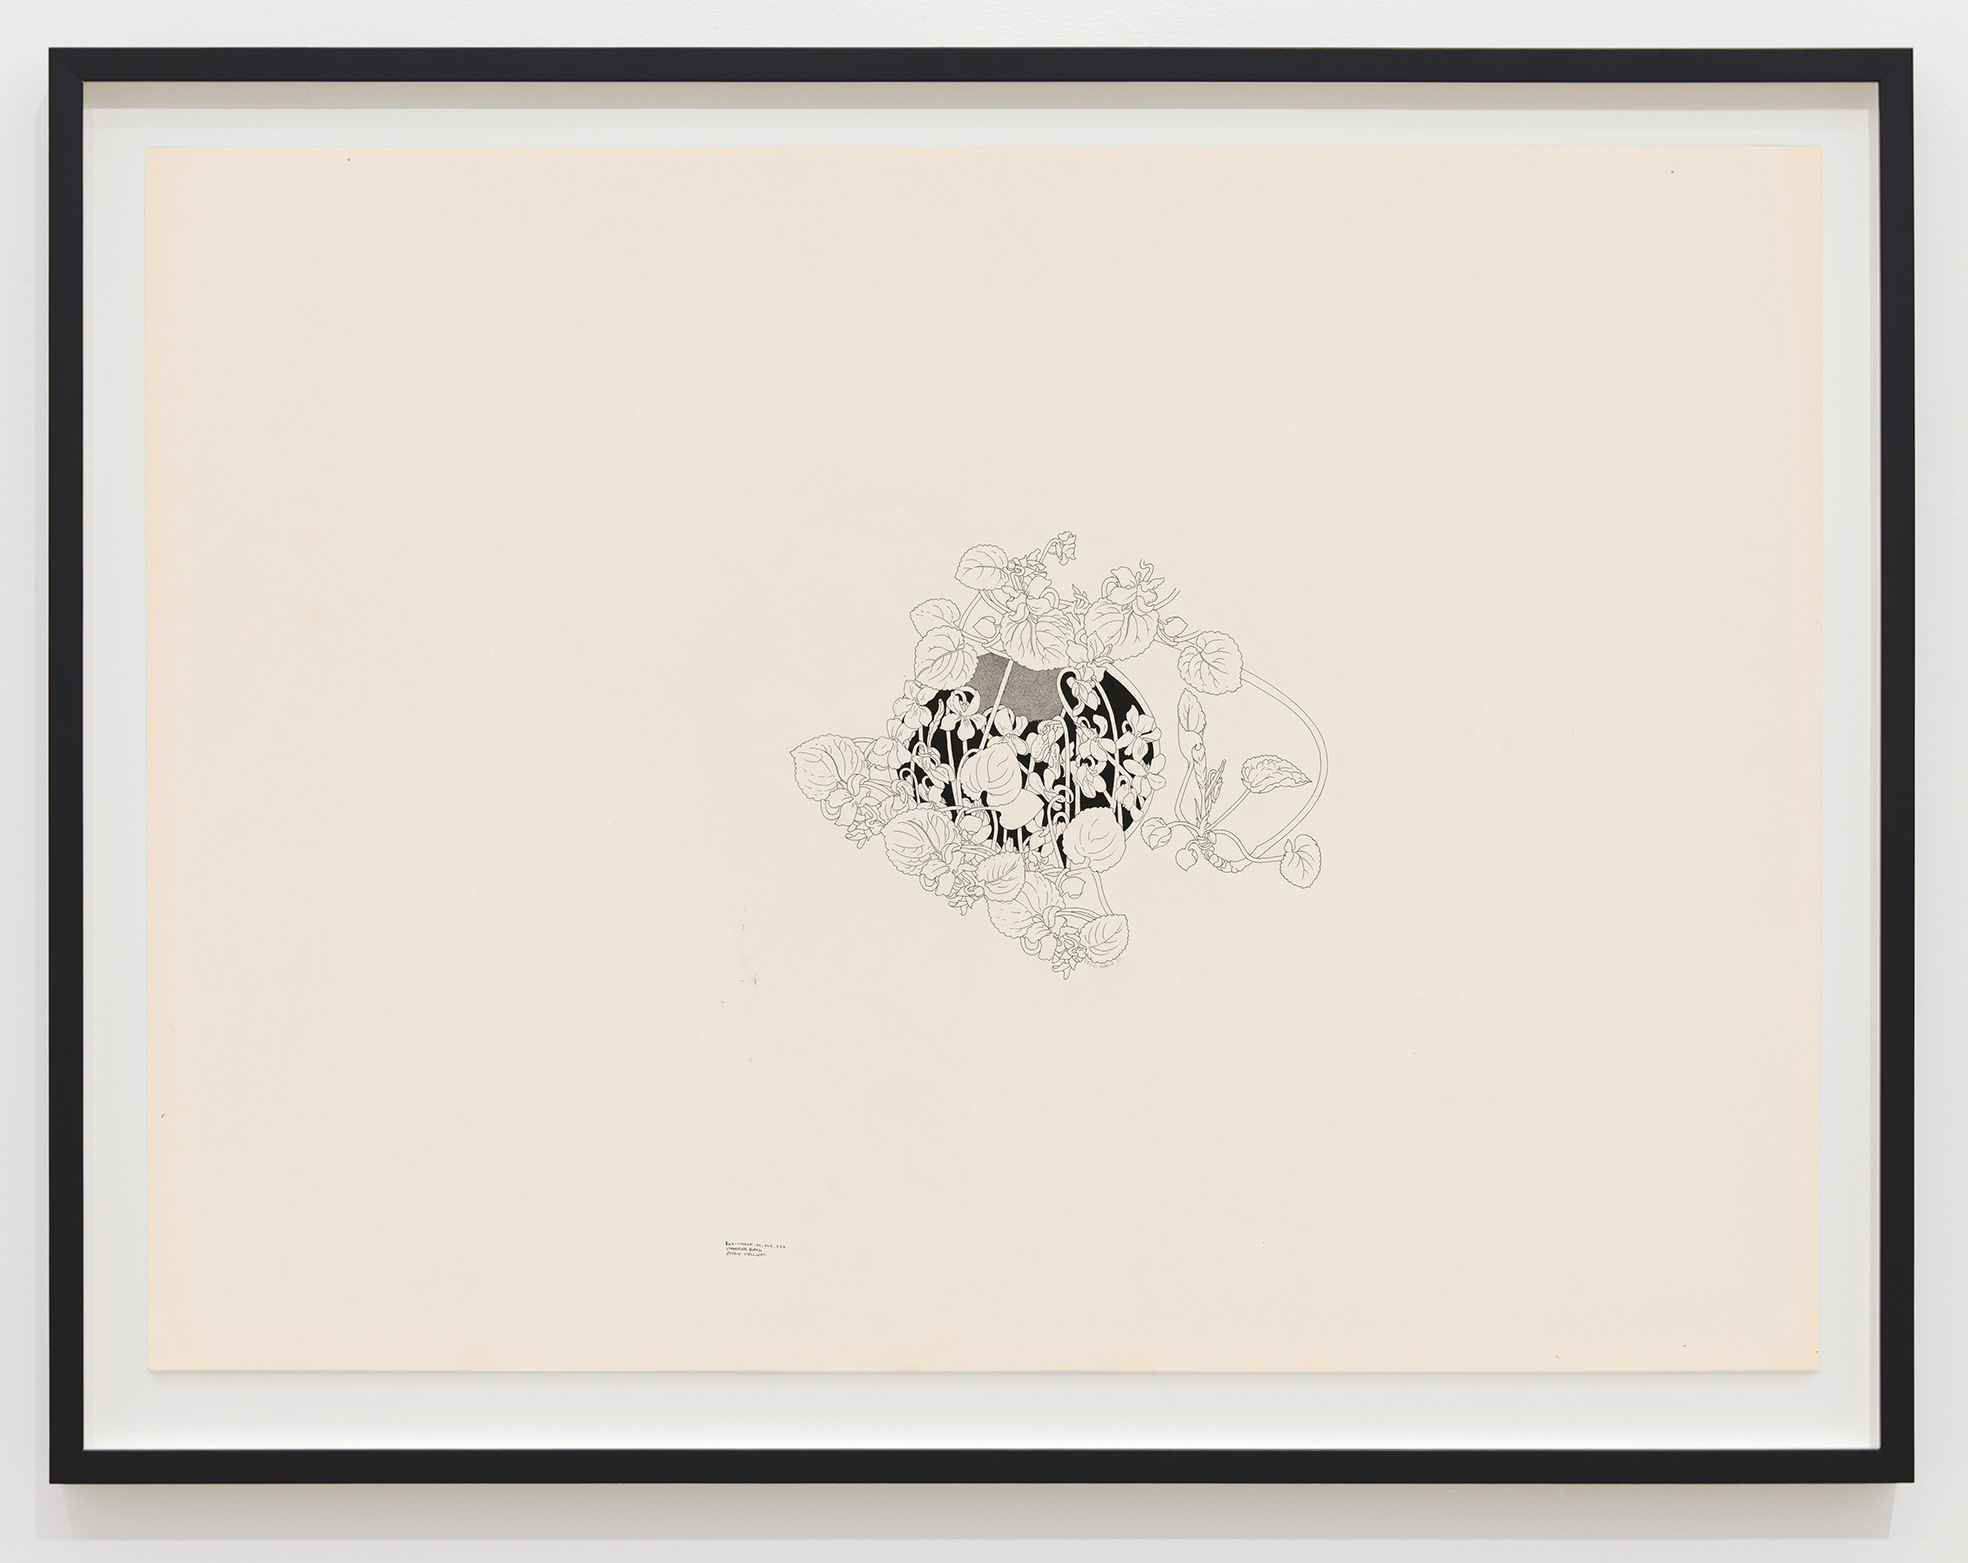 Charmian Johnson, not titled, c. 1978–80, ink on paper, 26 x 34 in. (65 x 85 cm) by